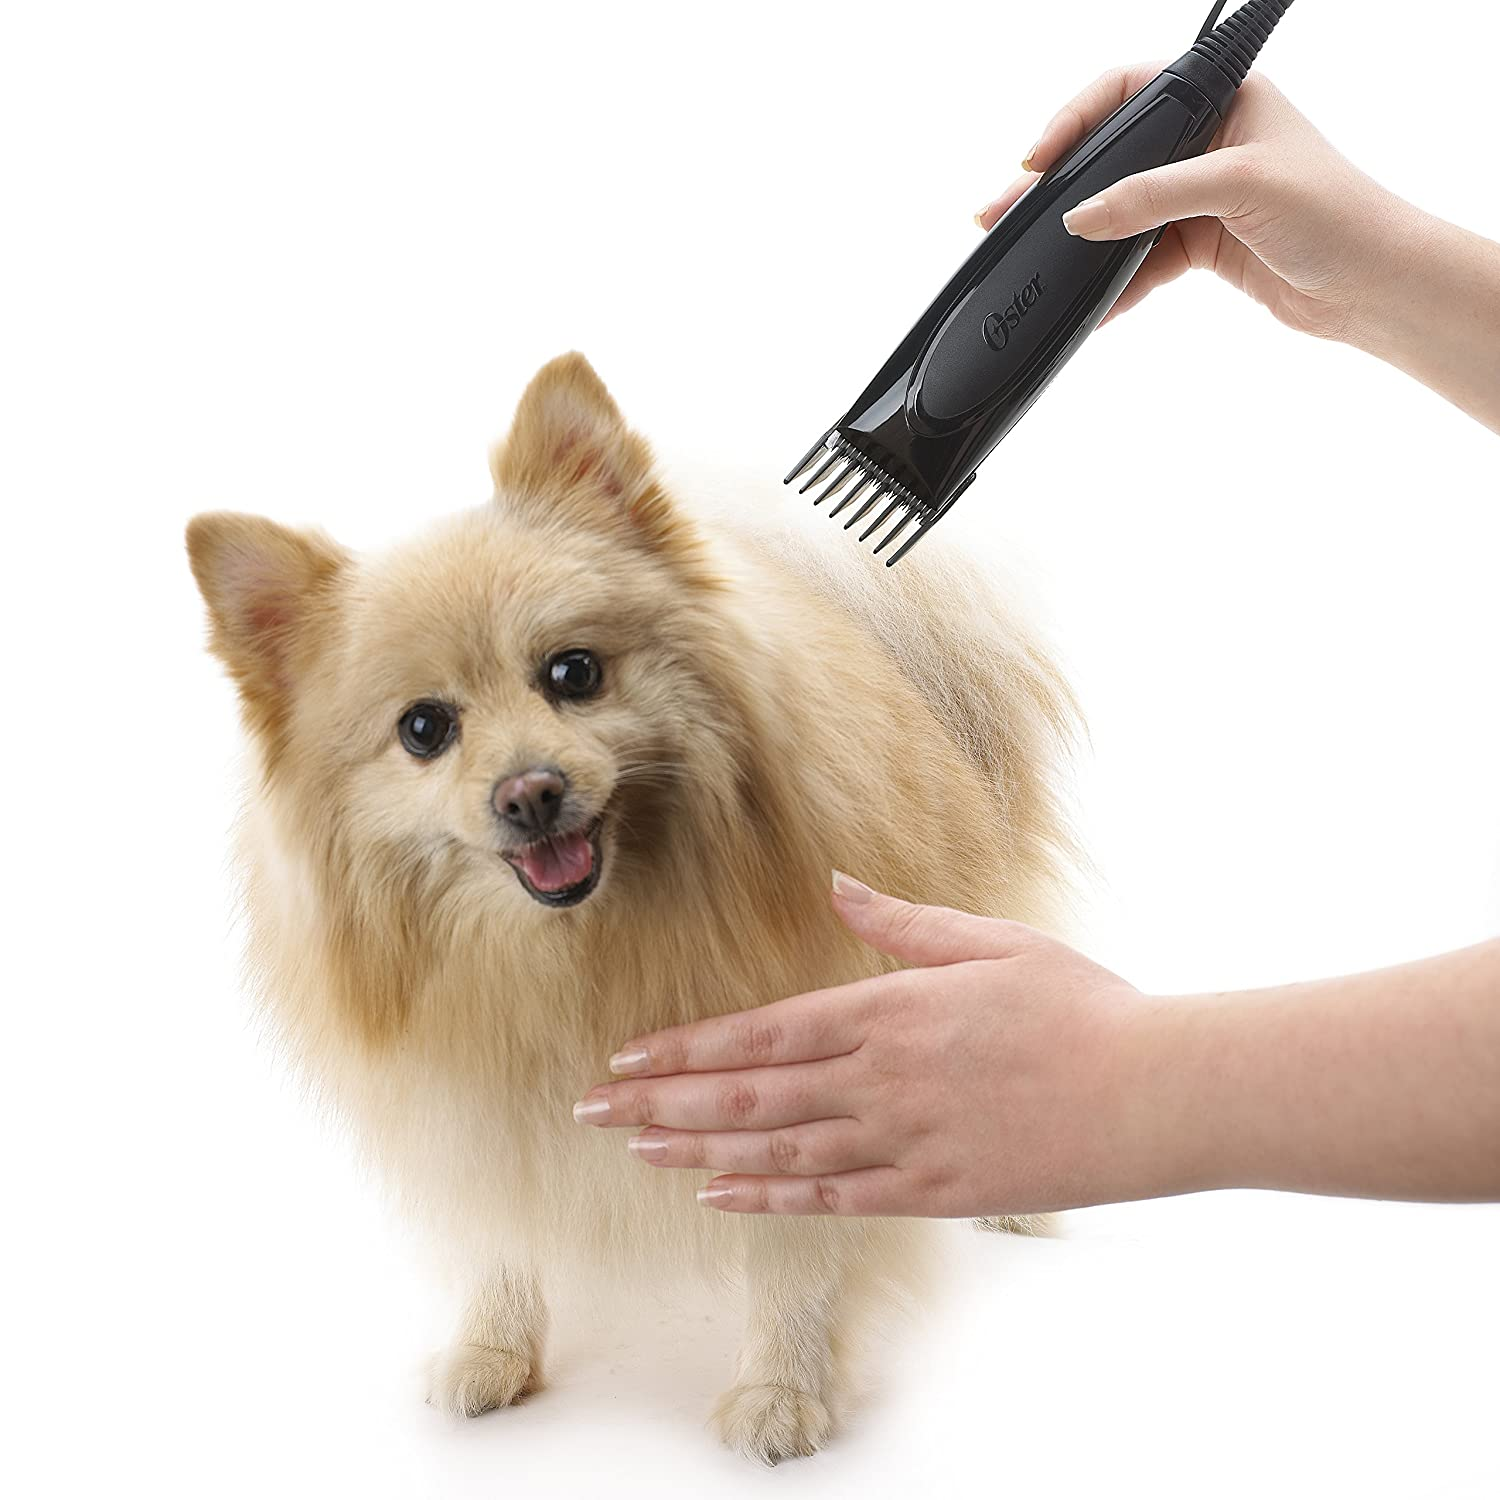 Pet Grooming Clippers : Amazon.com: Oster In-Home Grooming Kit with Super Duty Advance Clipper and Bonus Step-by-Step DVD